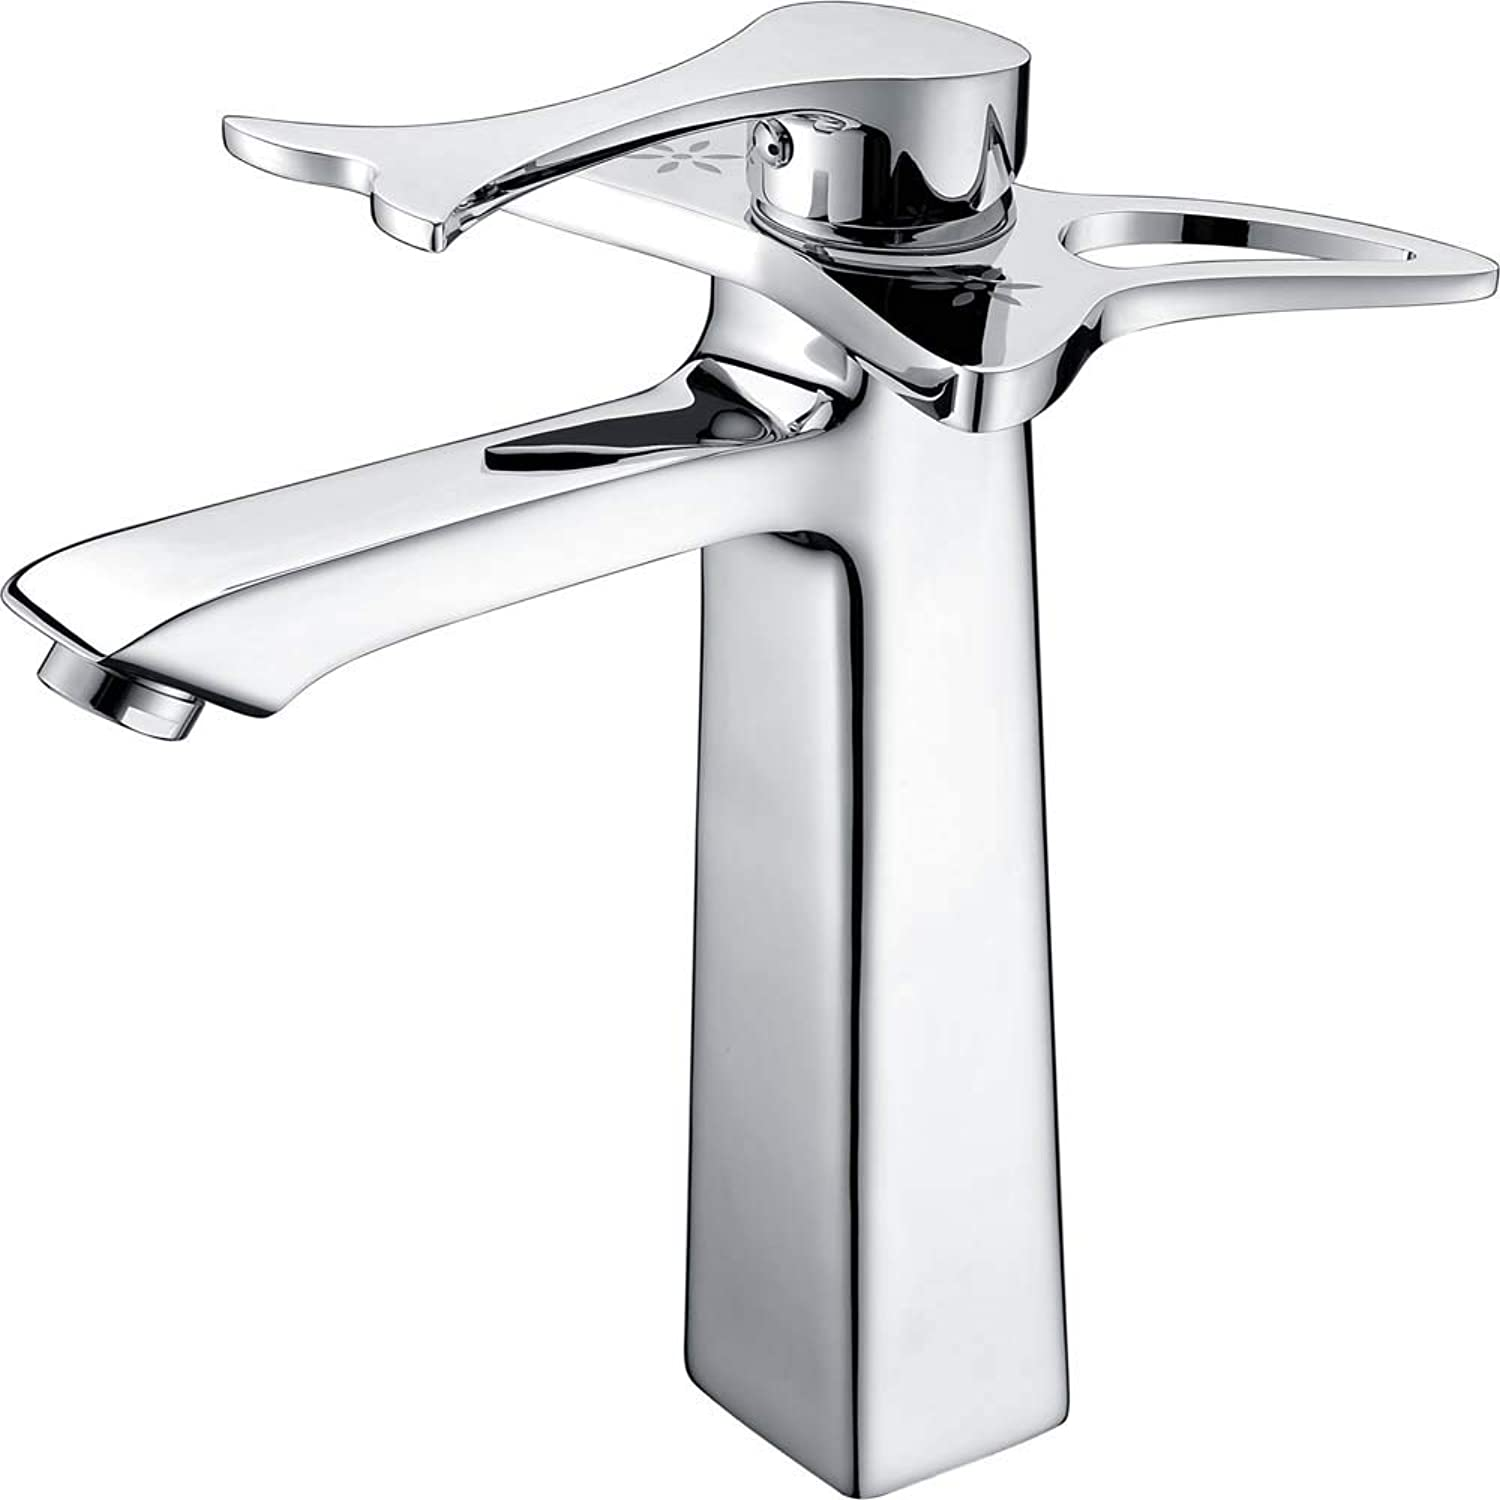 Copper Single Hole Hot and Cold Water Faucet Above Counter Basin Mixed Water Bathroom Washbasin Faucet Chrome